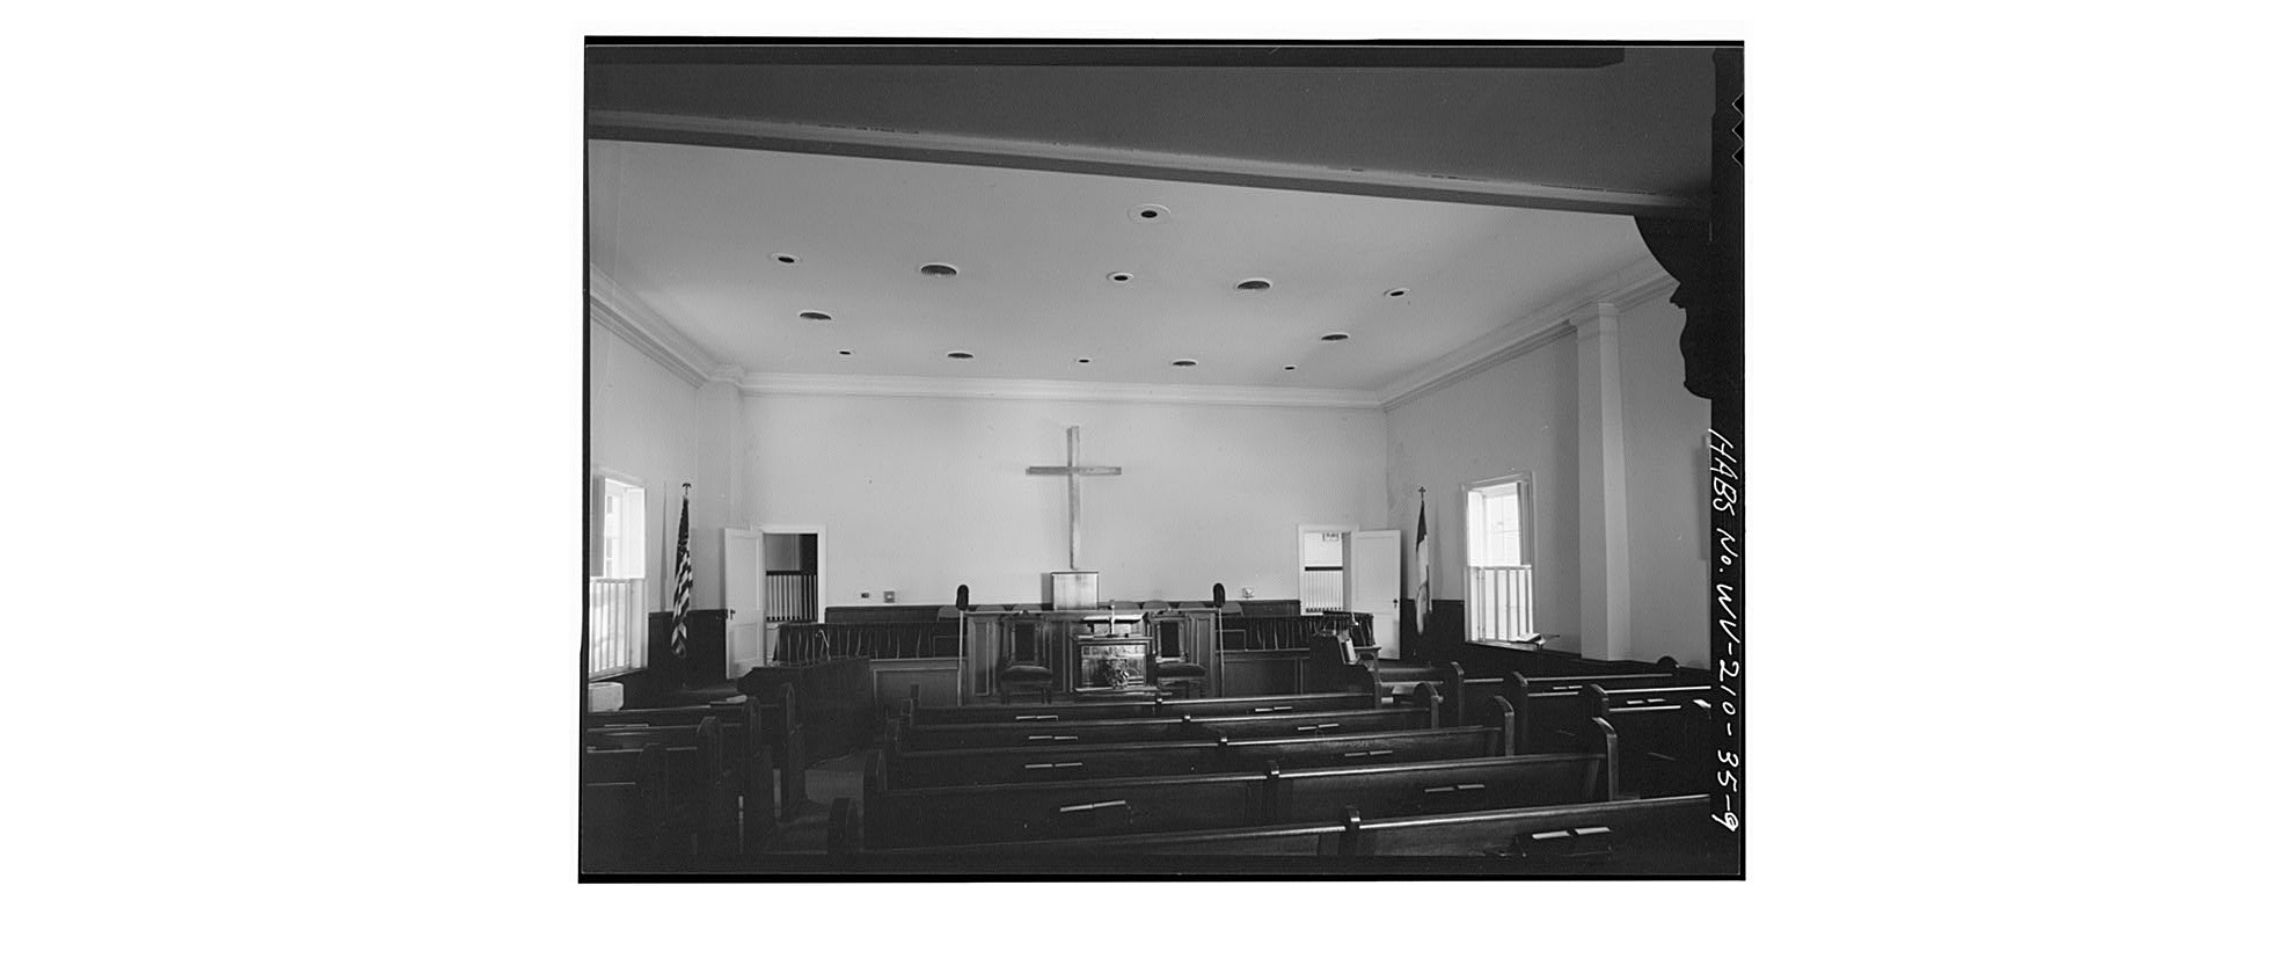 Interior of the church, 1980